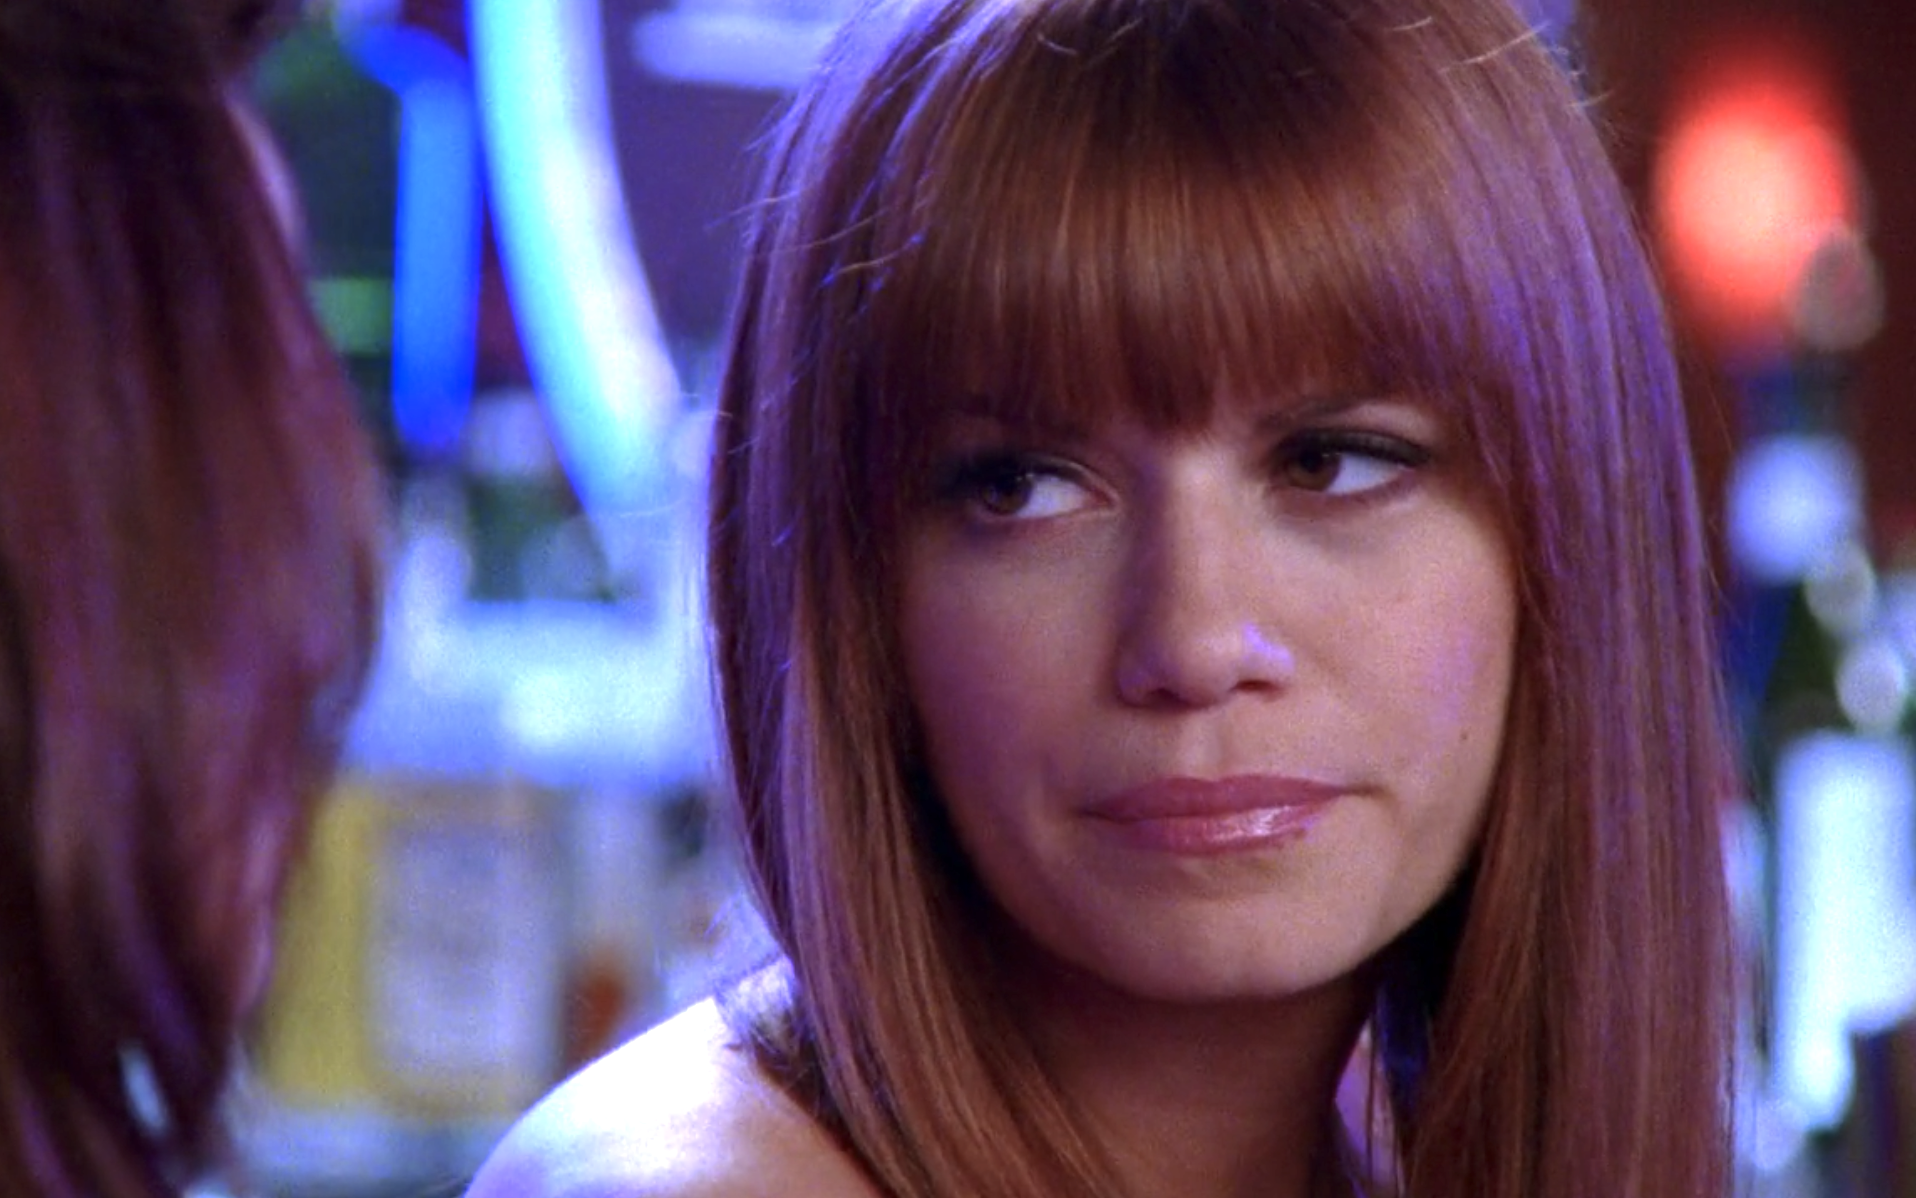 Haley with straight hair with straight across bangs